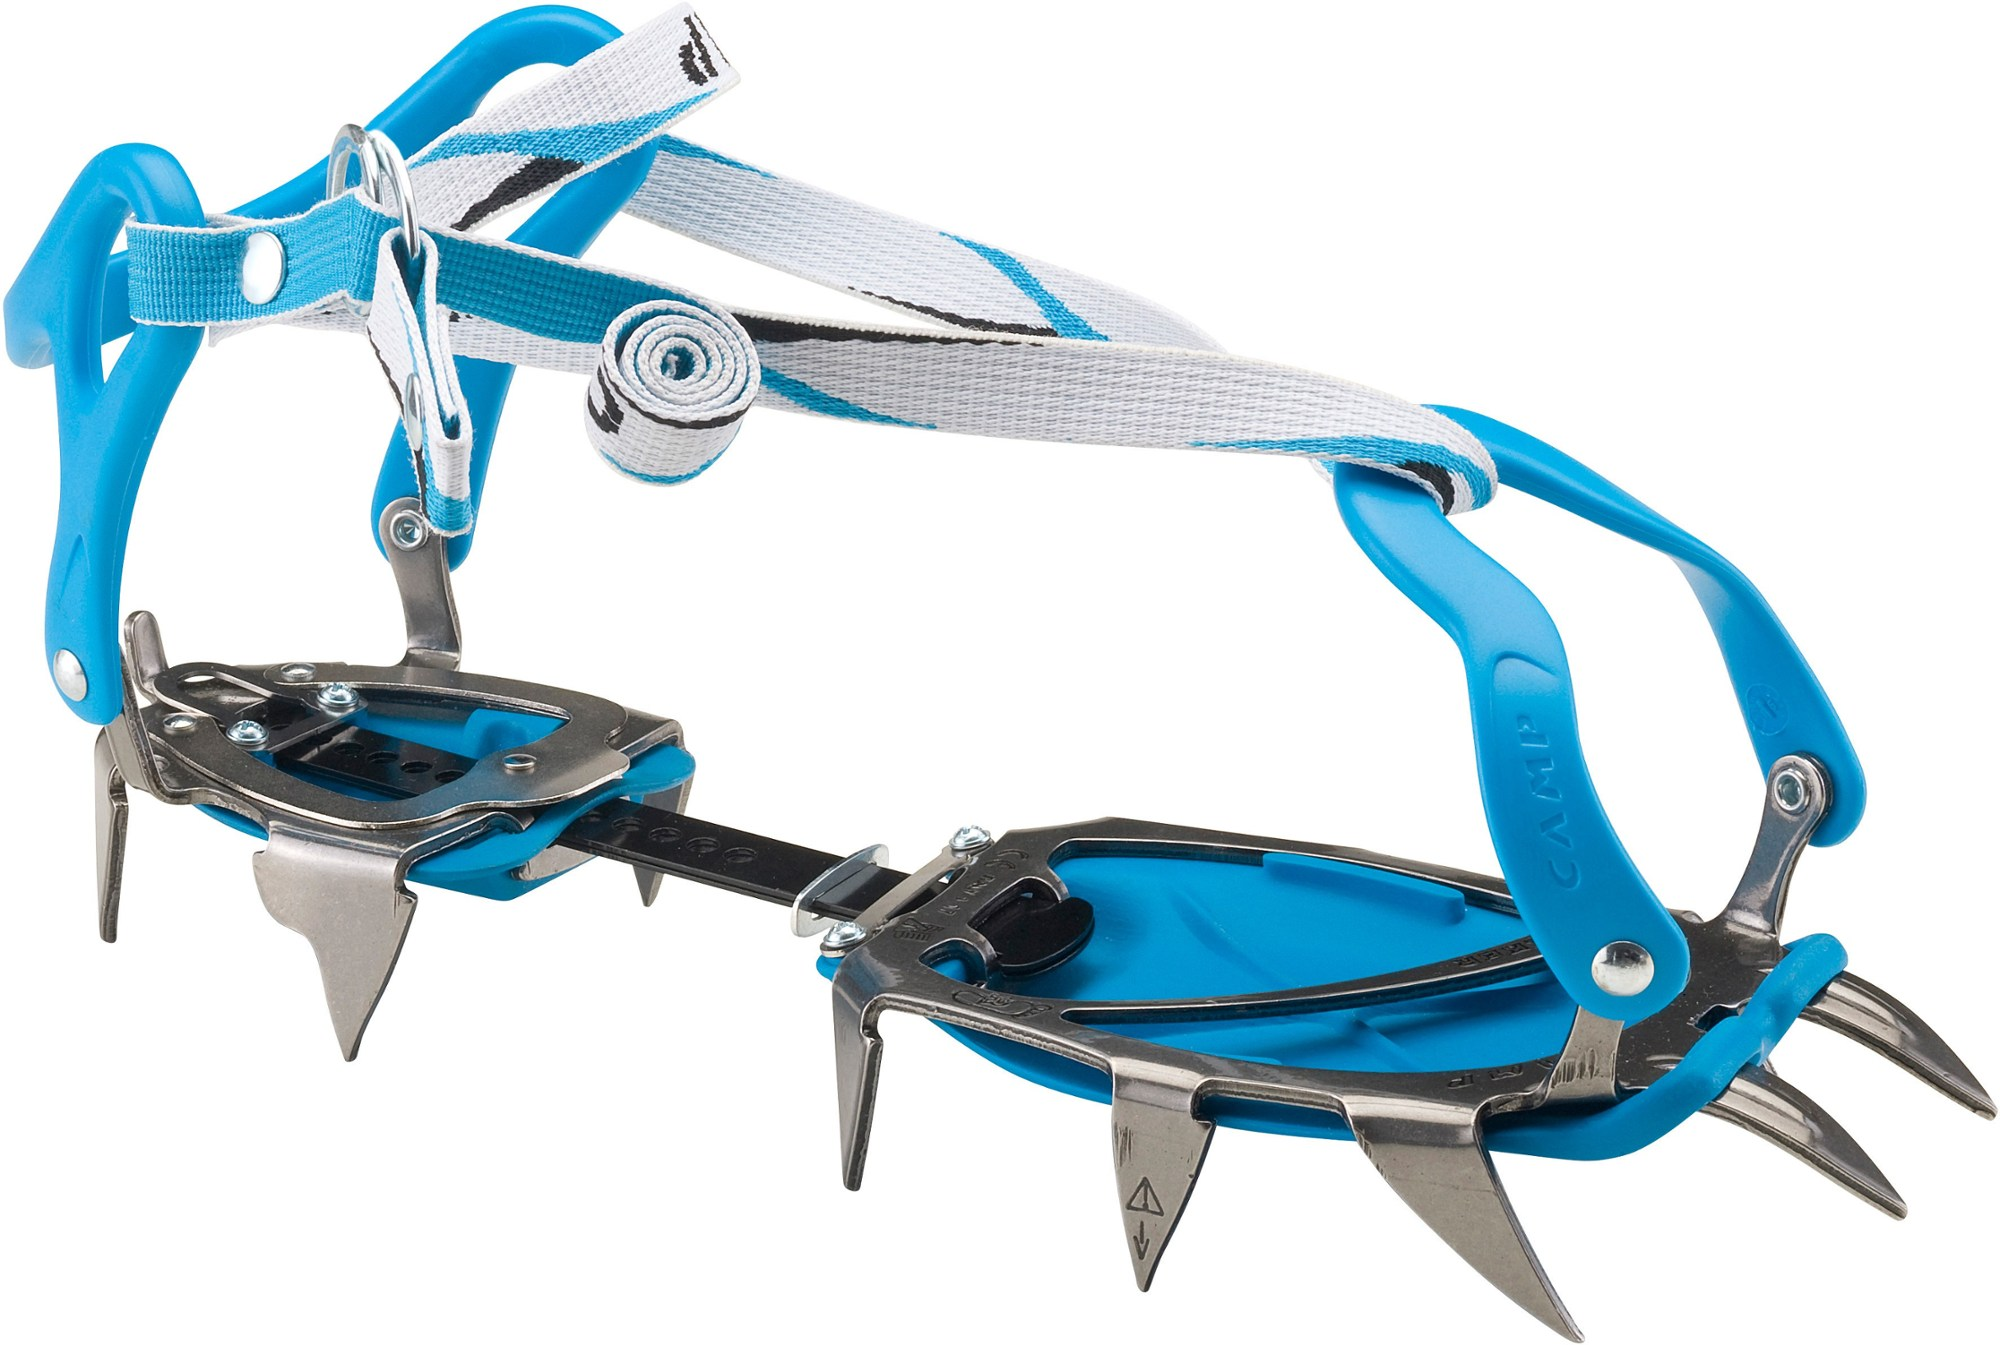 C.A.M.P. USA Stalker Universal Crampons